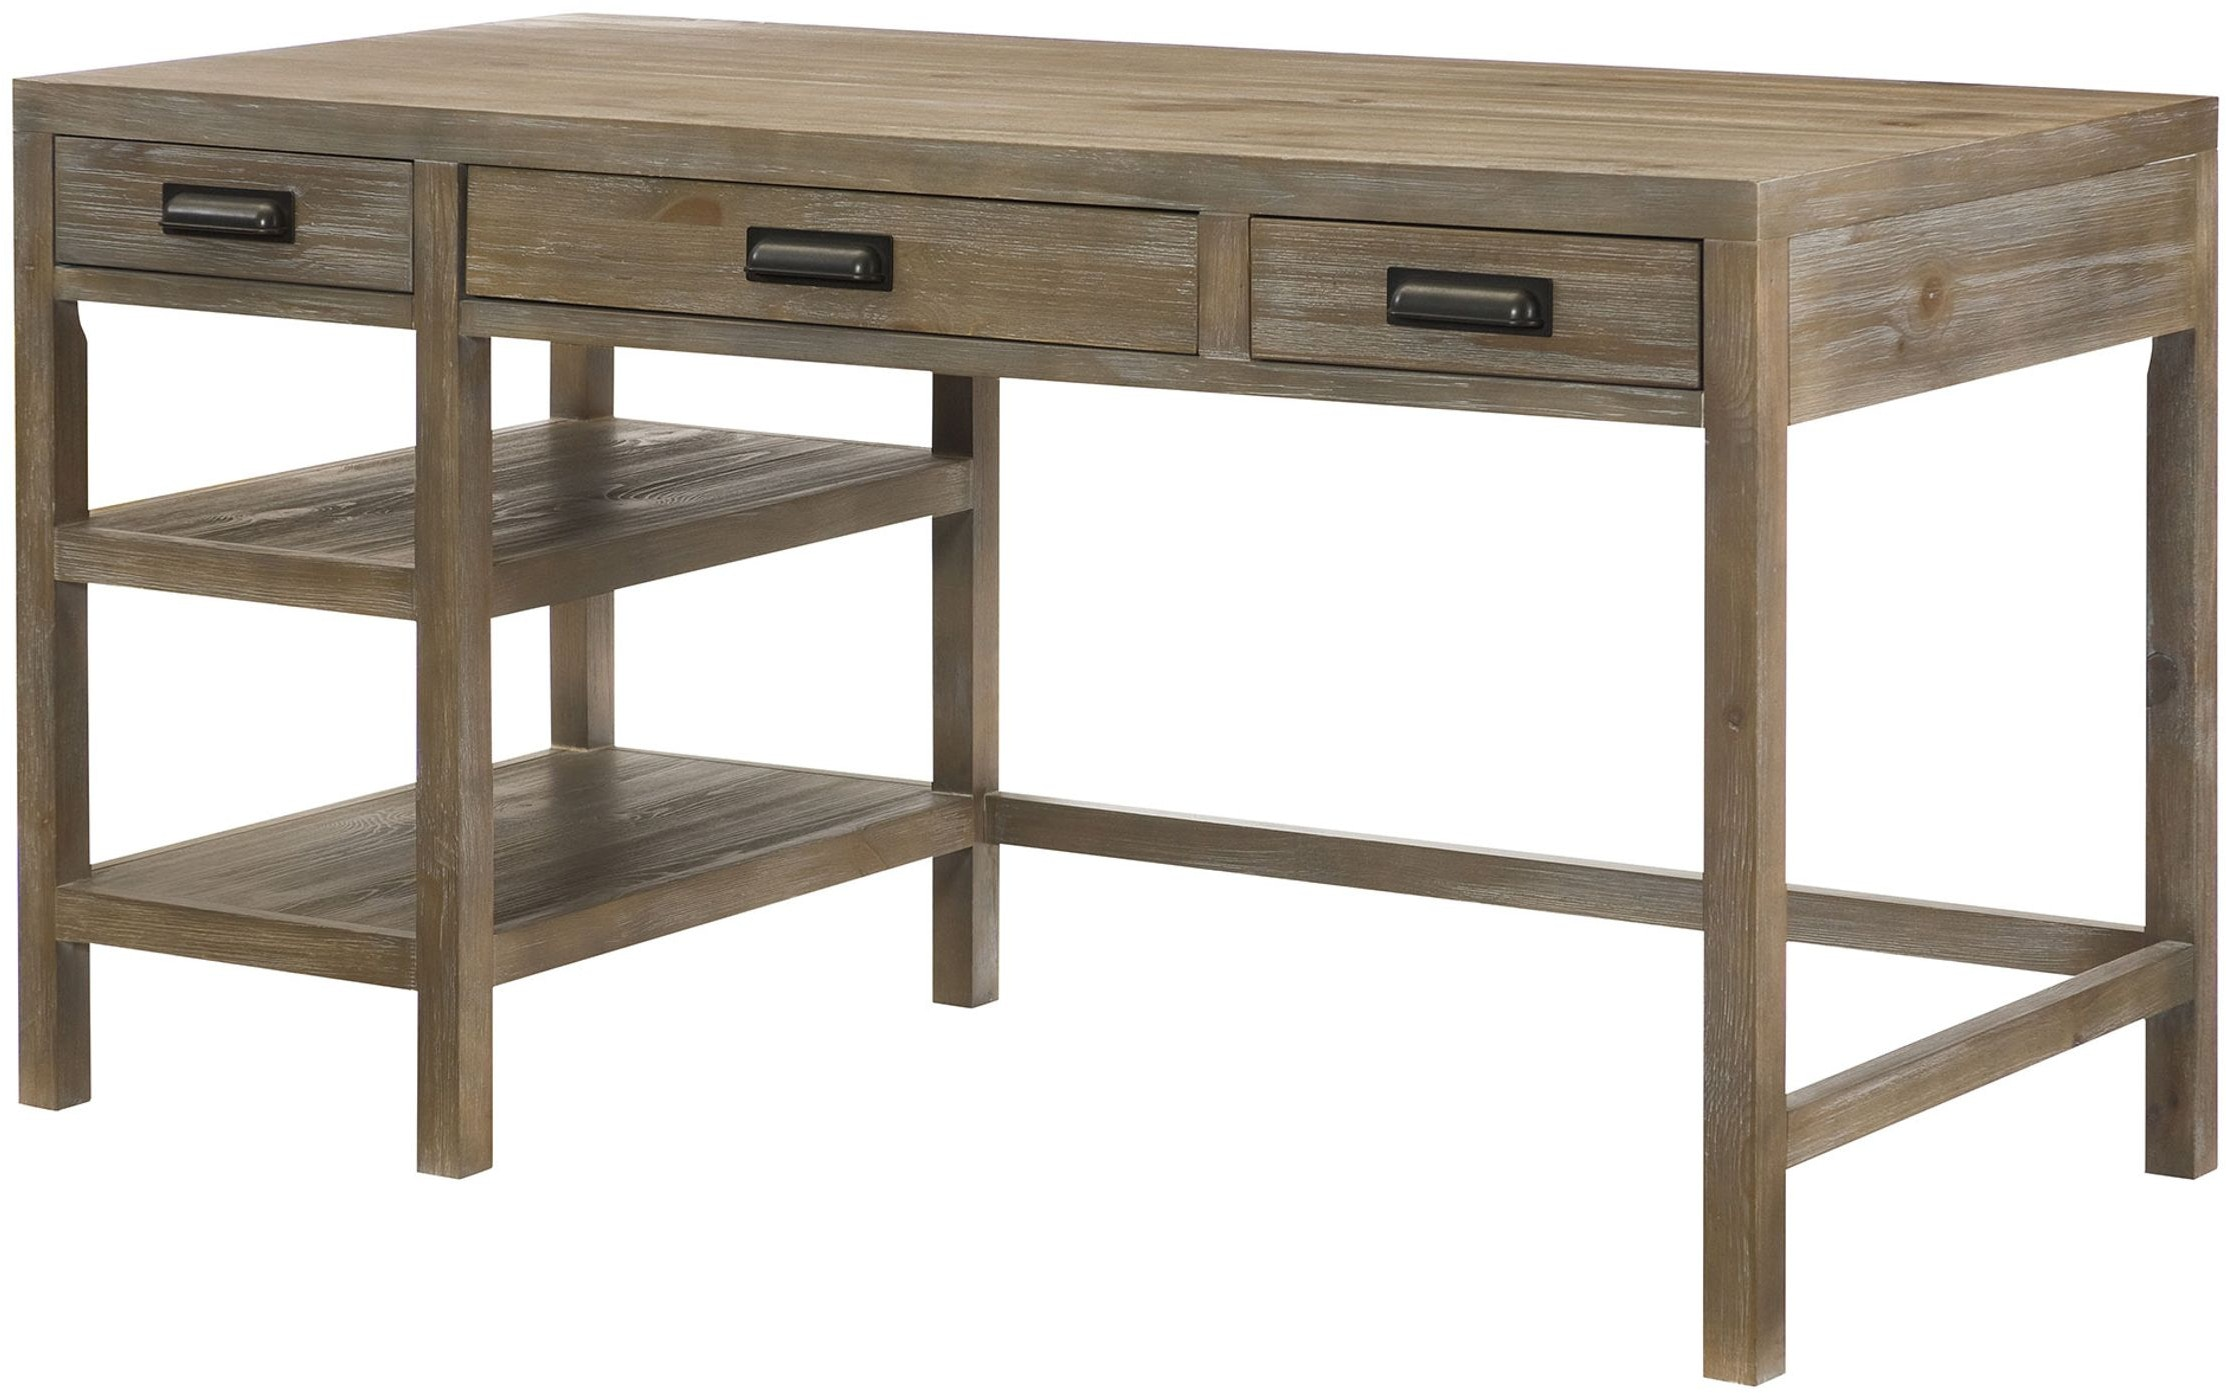 Hammary Home fice Desk 444 940 Bacons Furniture